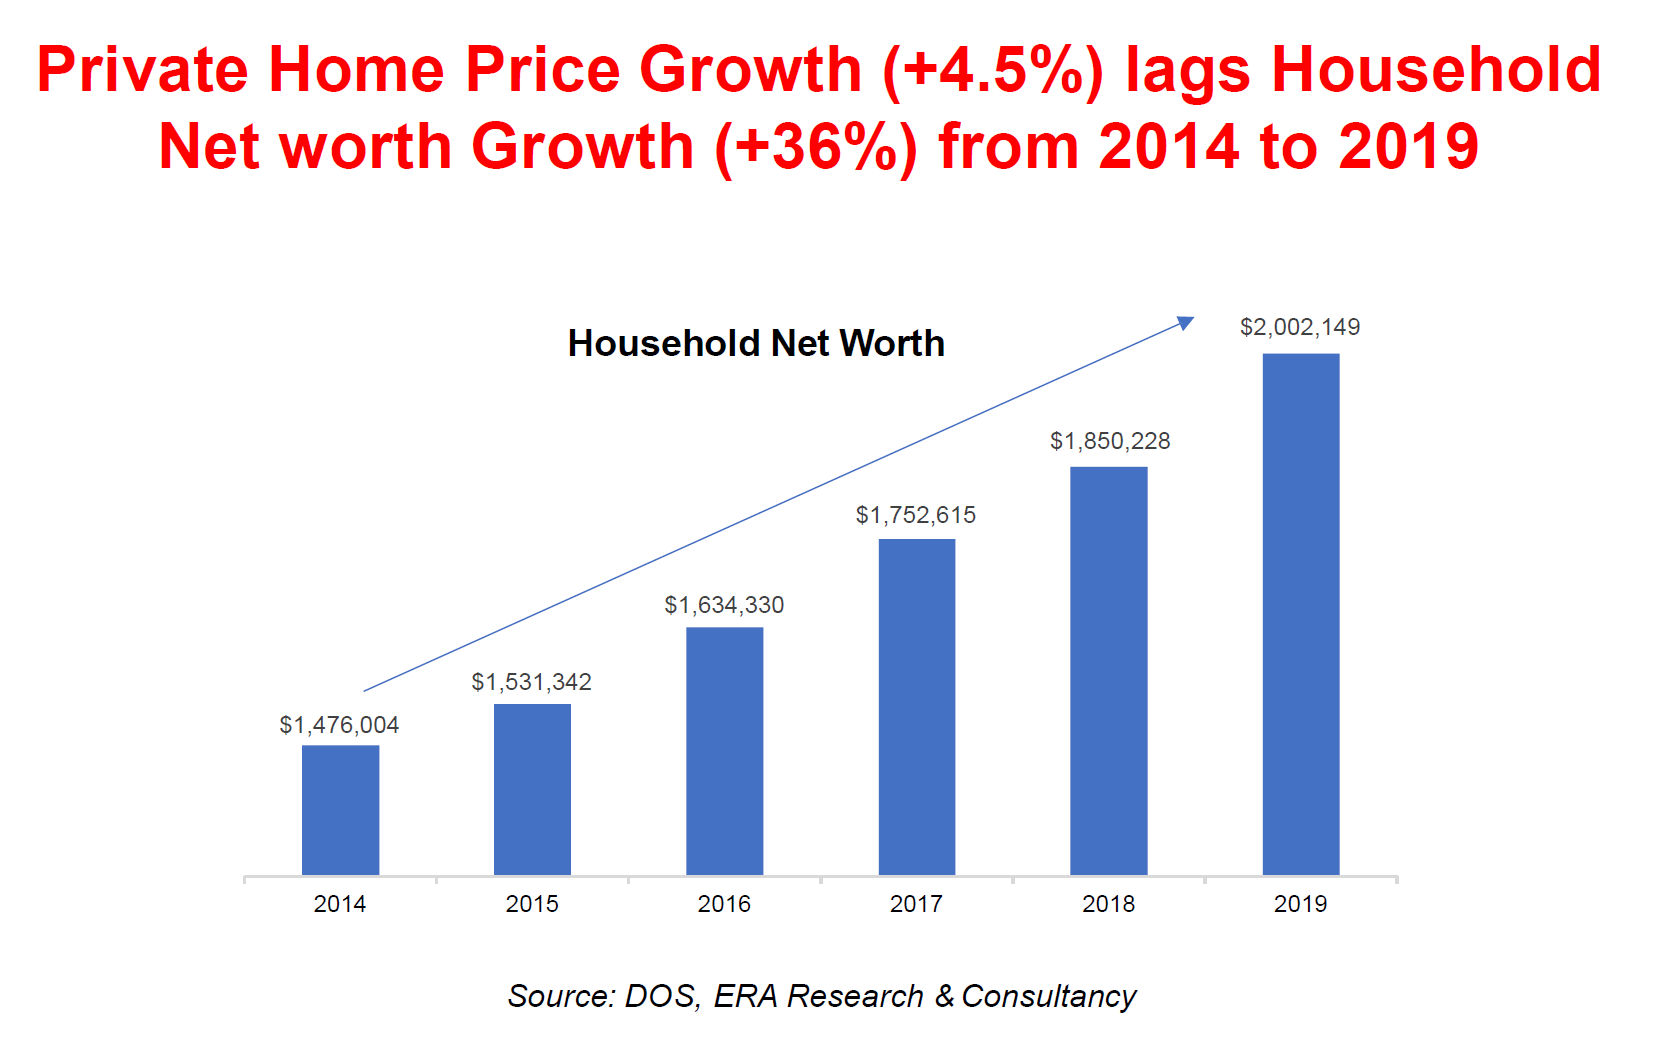 Private Home Sales Lag behind household income growth